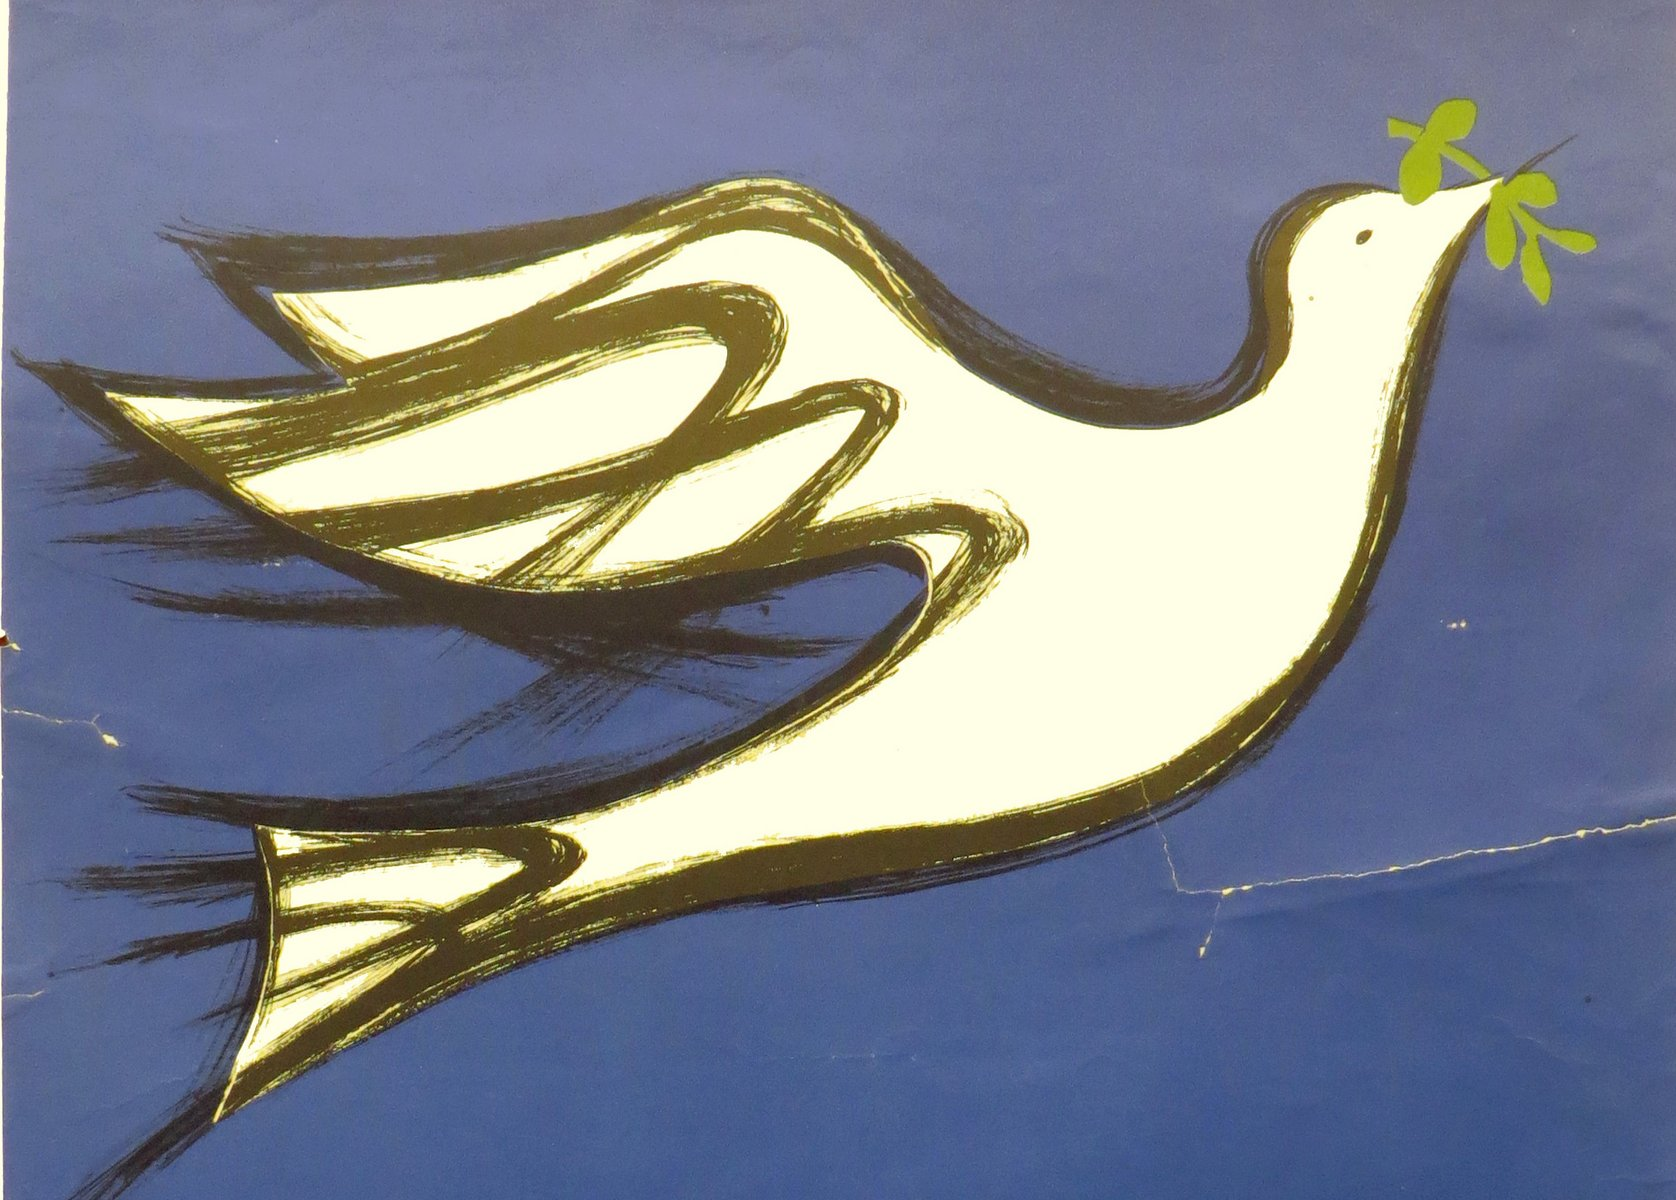 Image of Dove with olive branch, Poster, Student Mobilization Committee to End the War in Vietnam, 1970 [cropped]